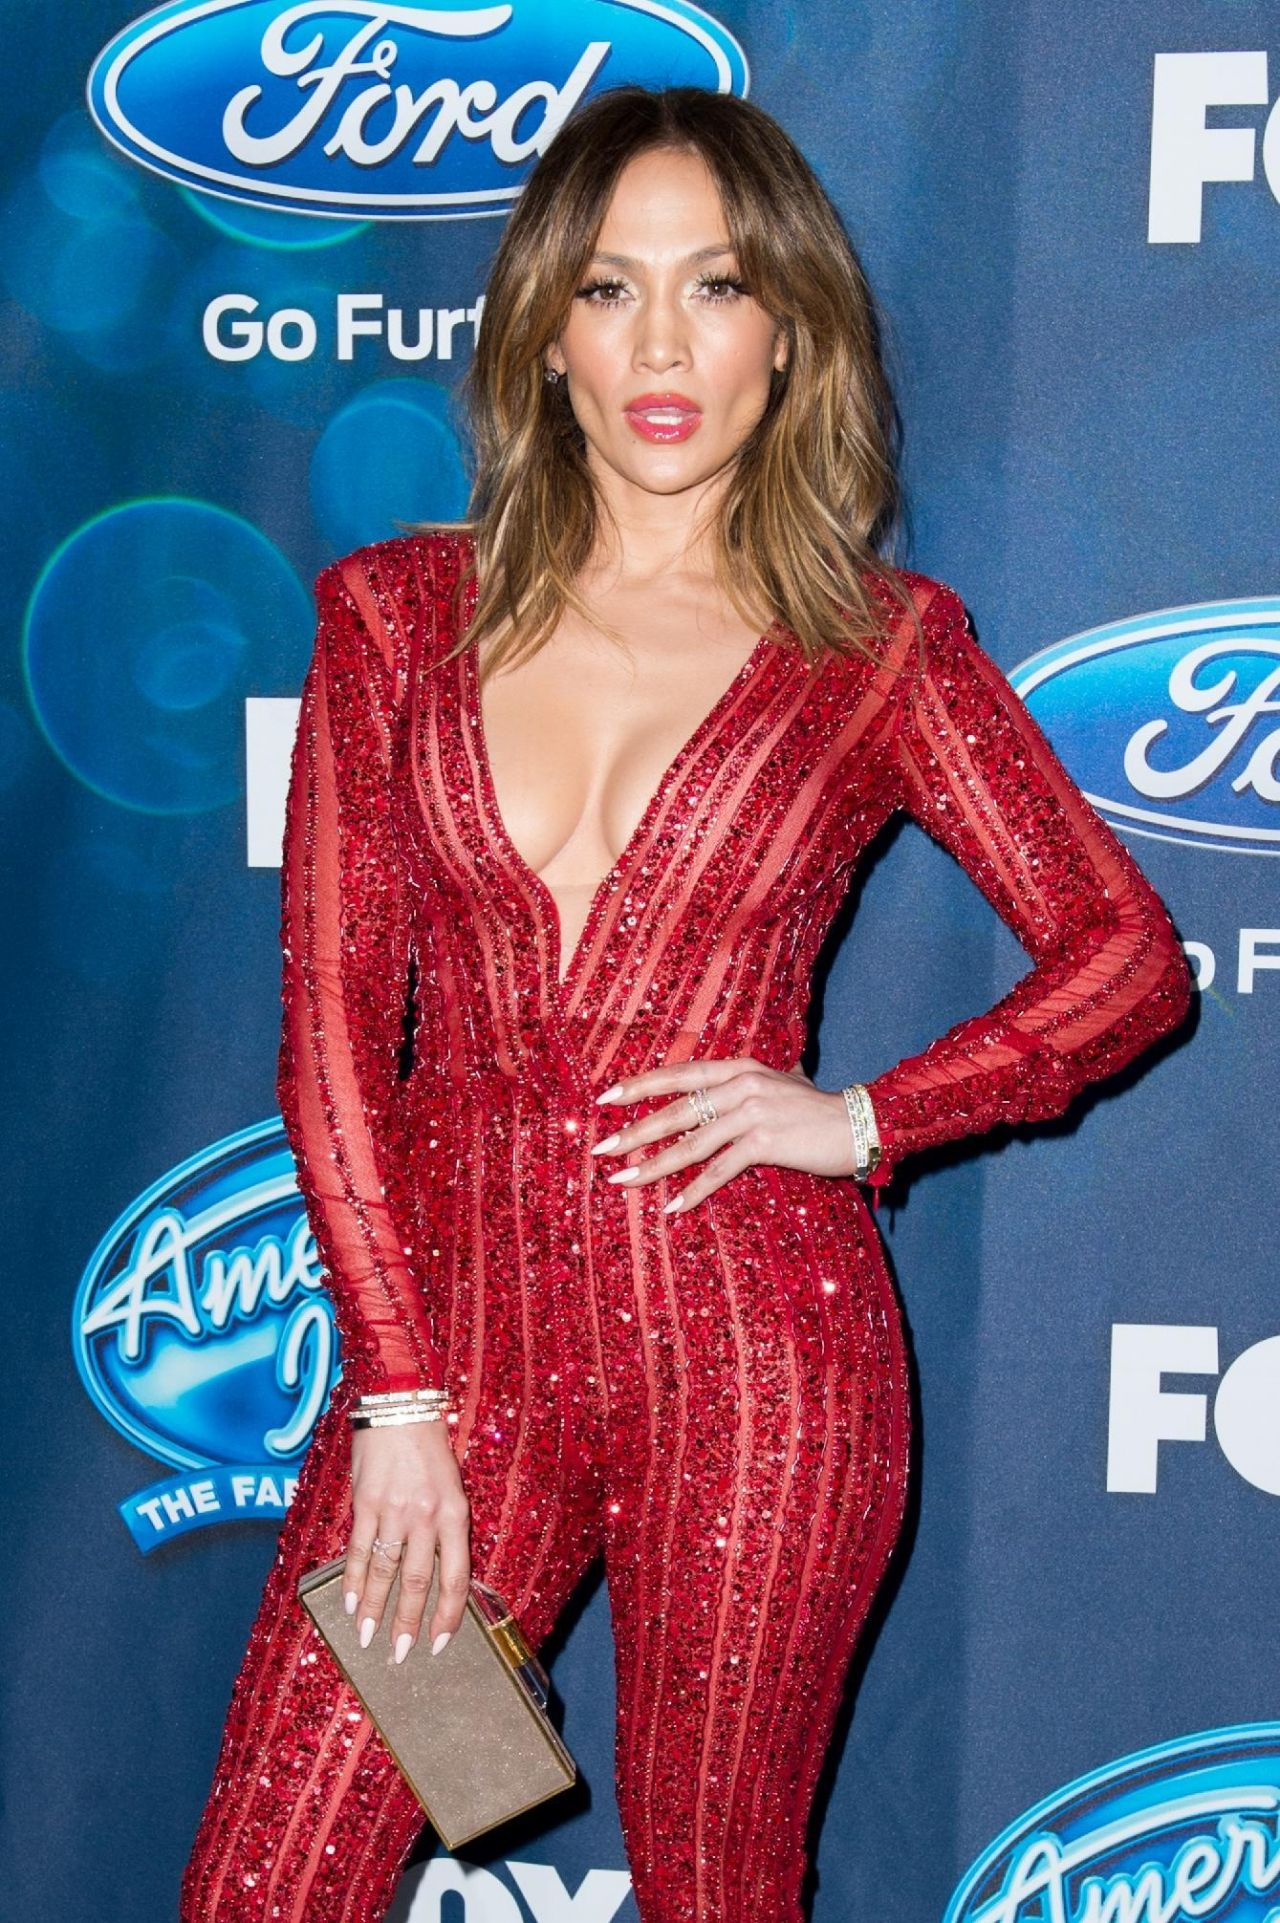 jennifer-lopez-looks-red-hot-in-a-jumpsuit-american-idol-xv-finalists-party-in-west-hollywood-2-25-2016-2